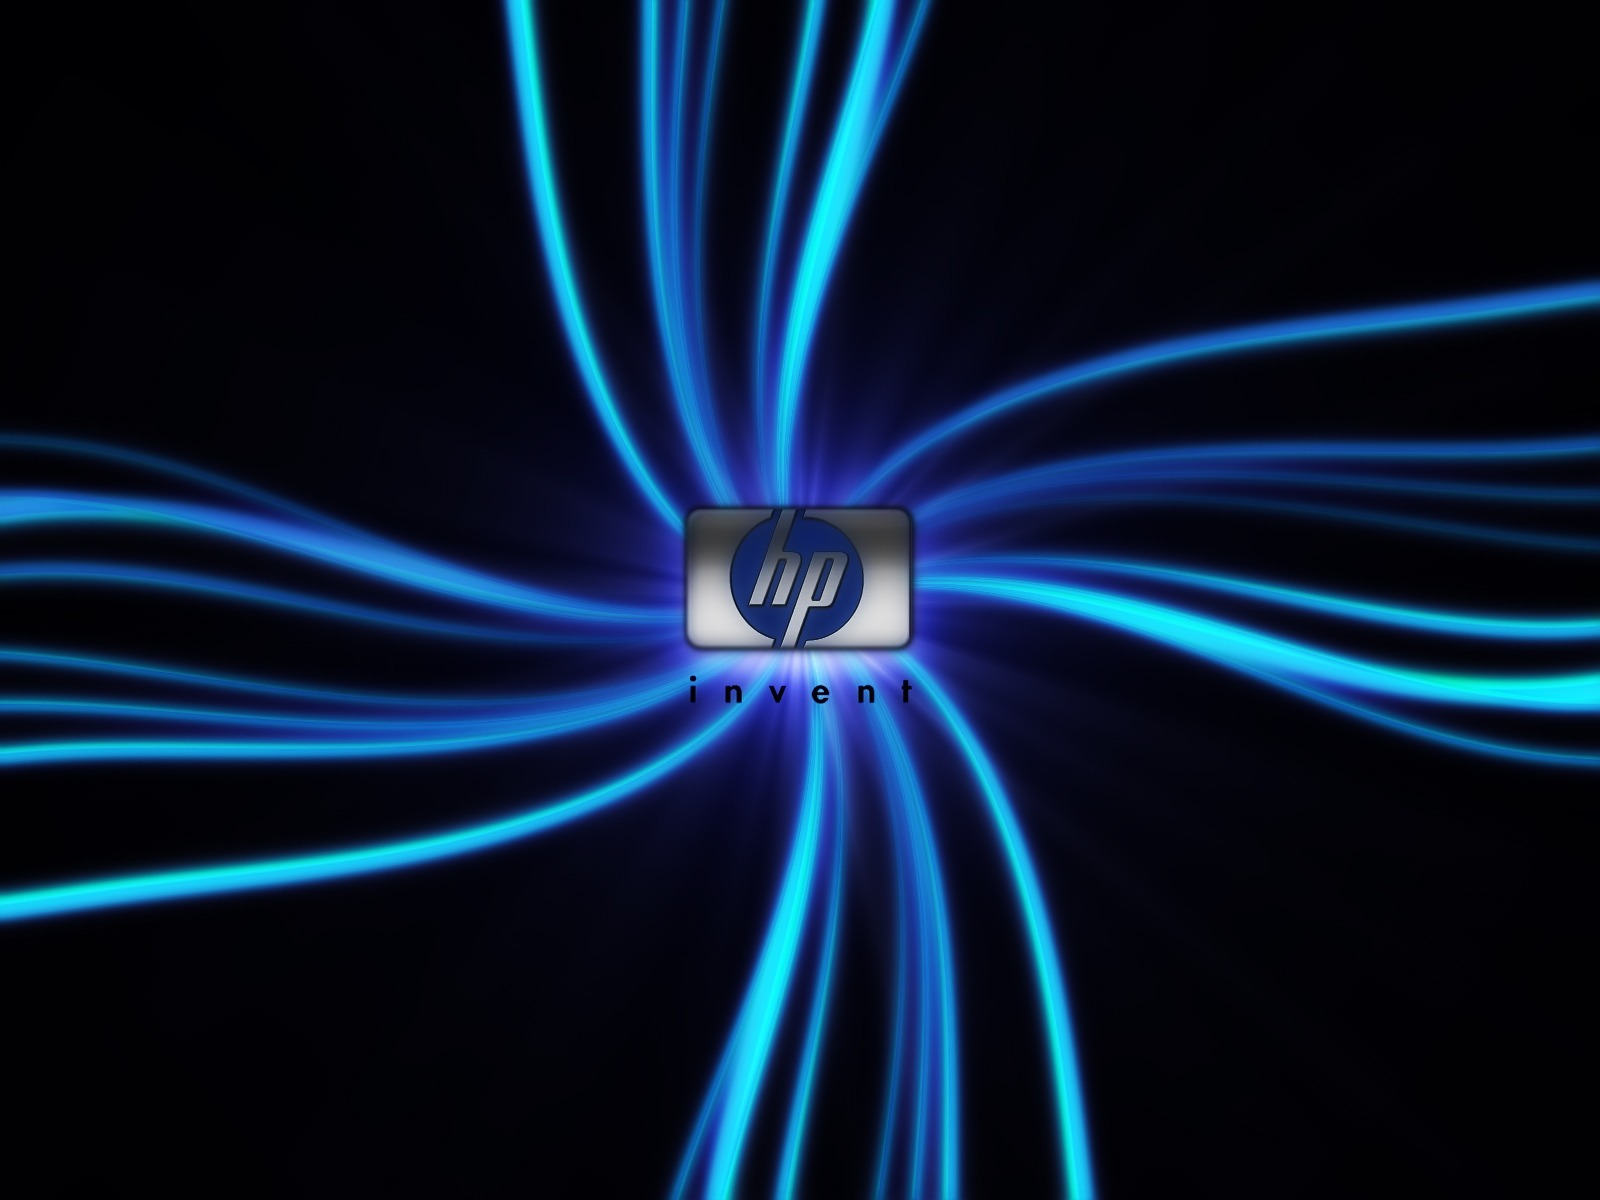 Windows wallpapers: hp Wallpapers 2